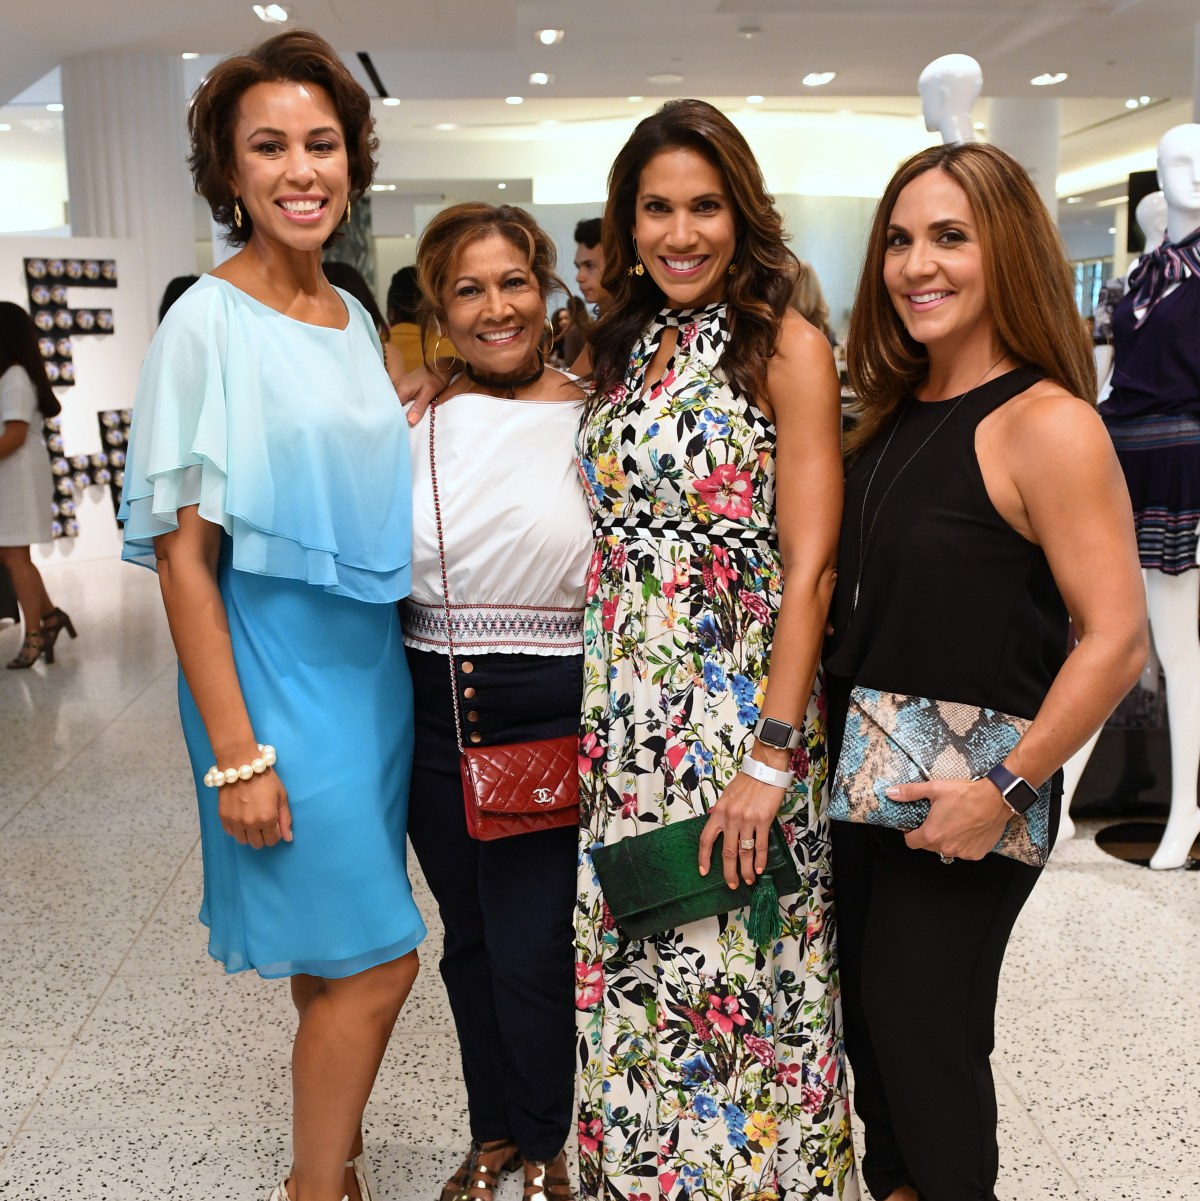 Houston, Women of Wardrobe Summer Soiree, August 2017, Dr. Crystal Wright, Monica McNeill, Rachel McNeill, Courtney Zavala